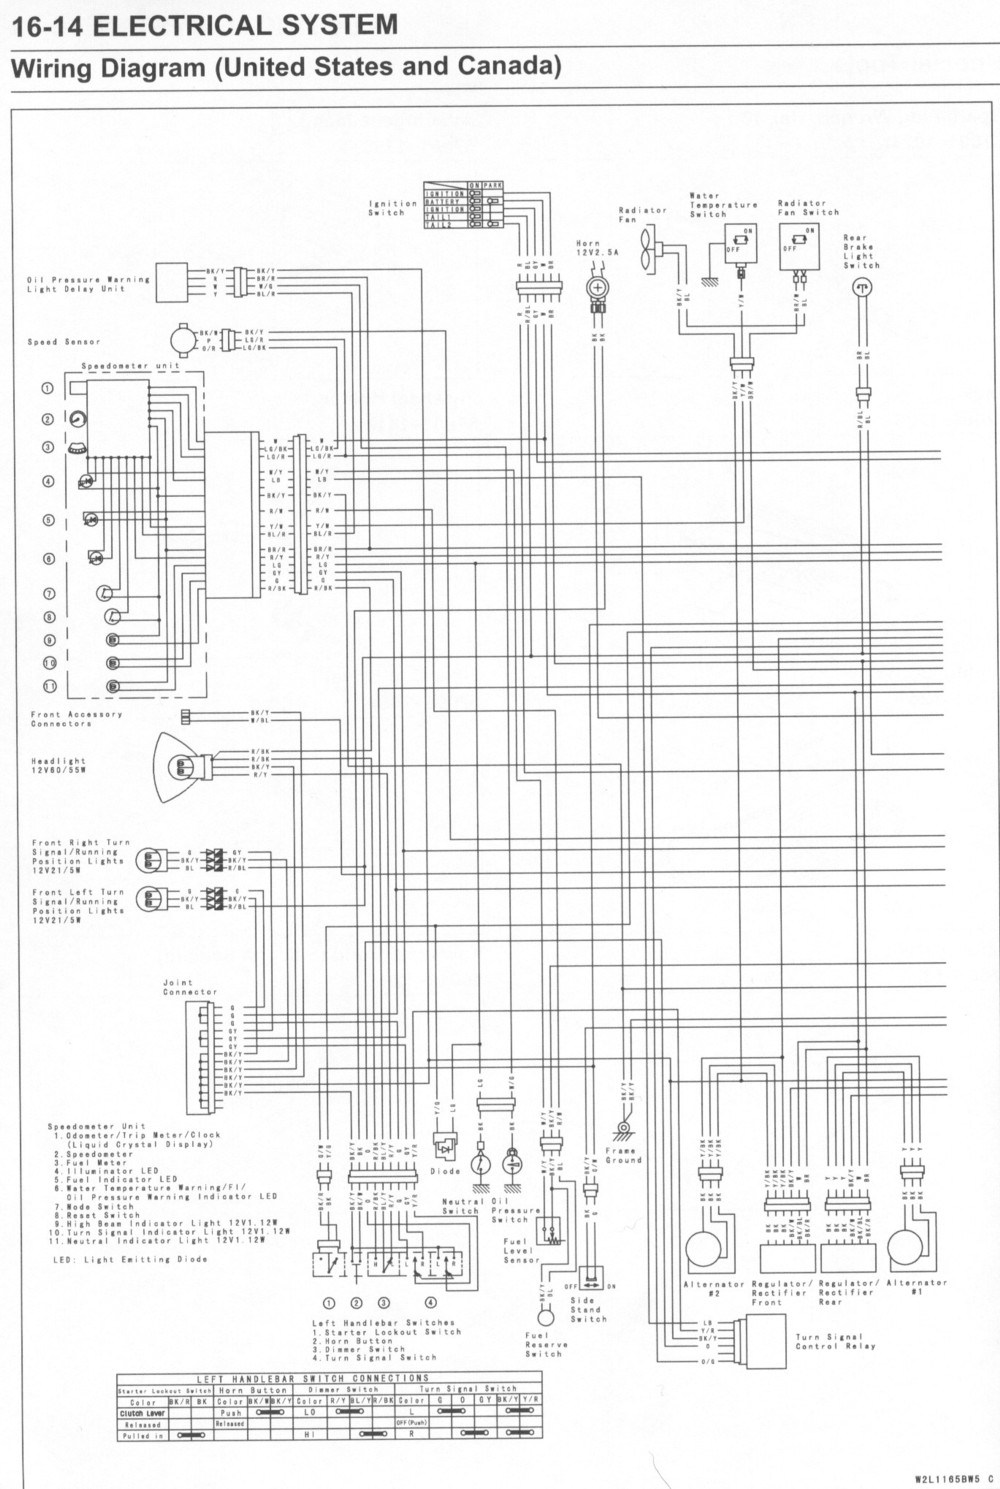 DIAGRAM] 2001 Kawasaki Vulcan 1500 Wiring Diagram Picture FULL Version HD  Quality Diagram Picture - ARMDIAGRAMS.ACTIVITES-LAC-AIGUEBELETTE.FRarmdiagrams.activites-lac-aiguebelette.fr